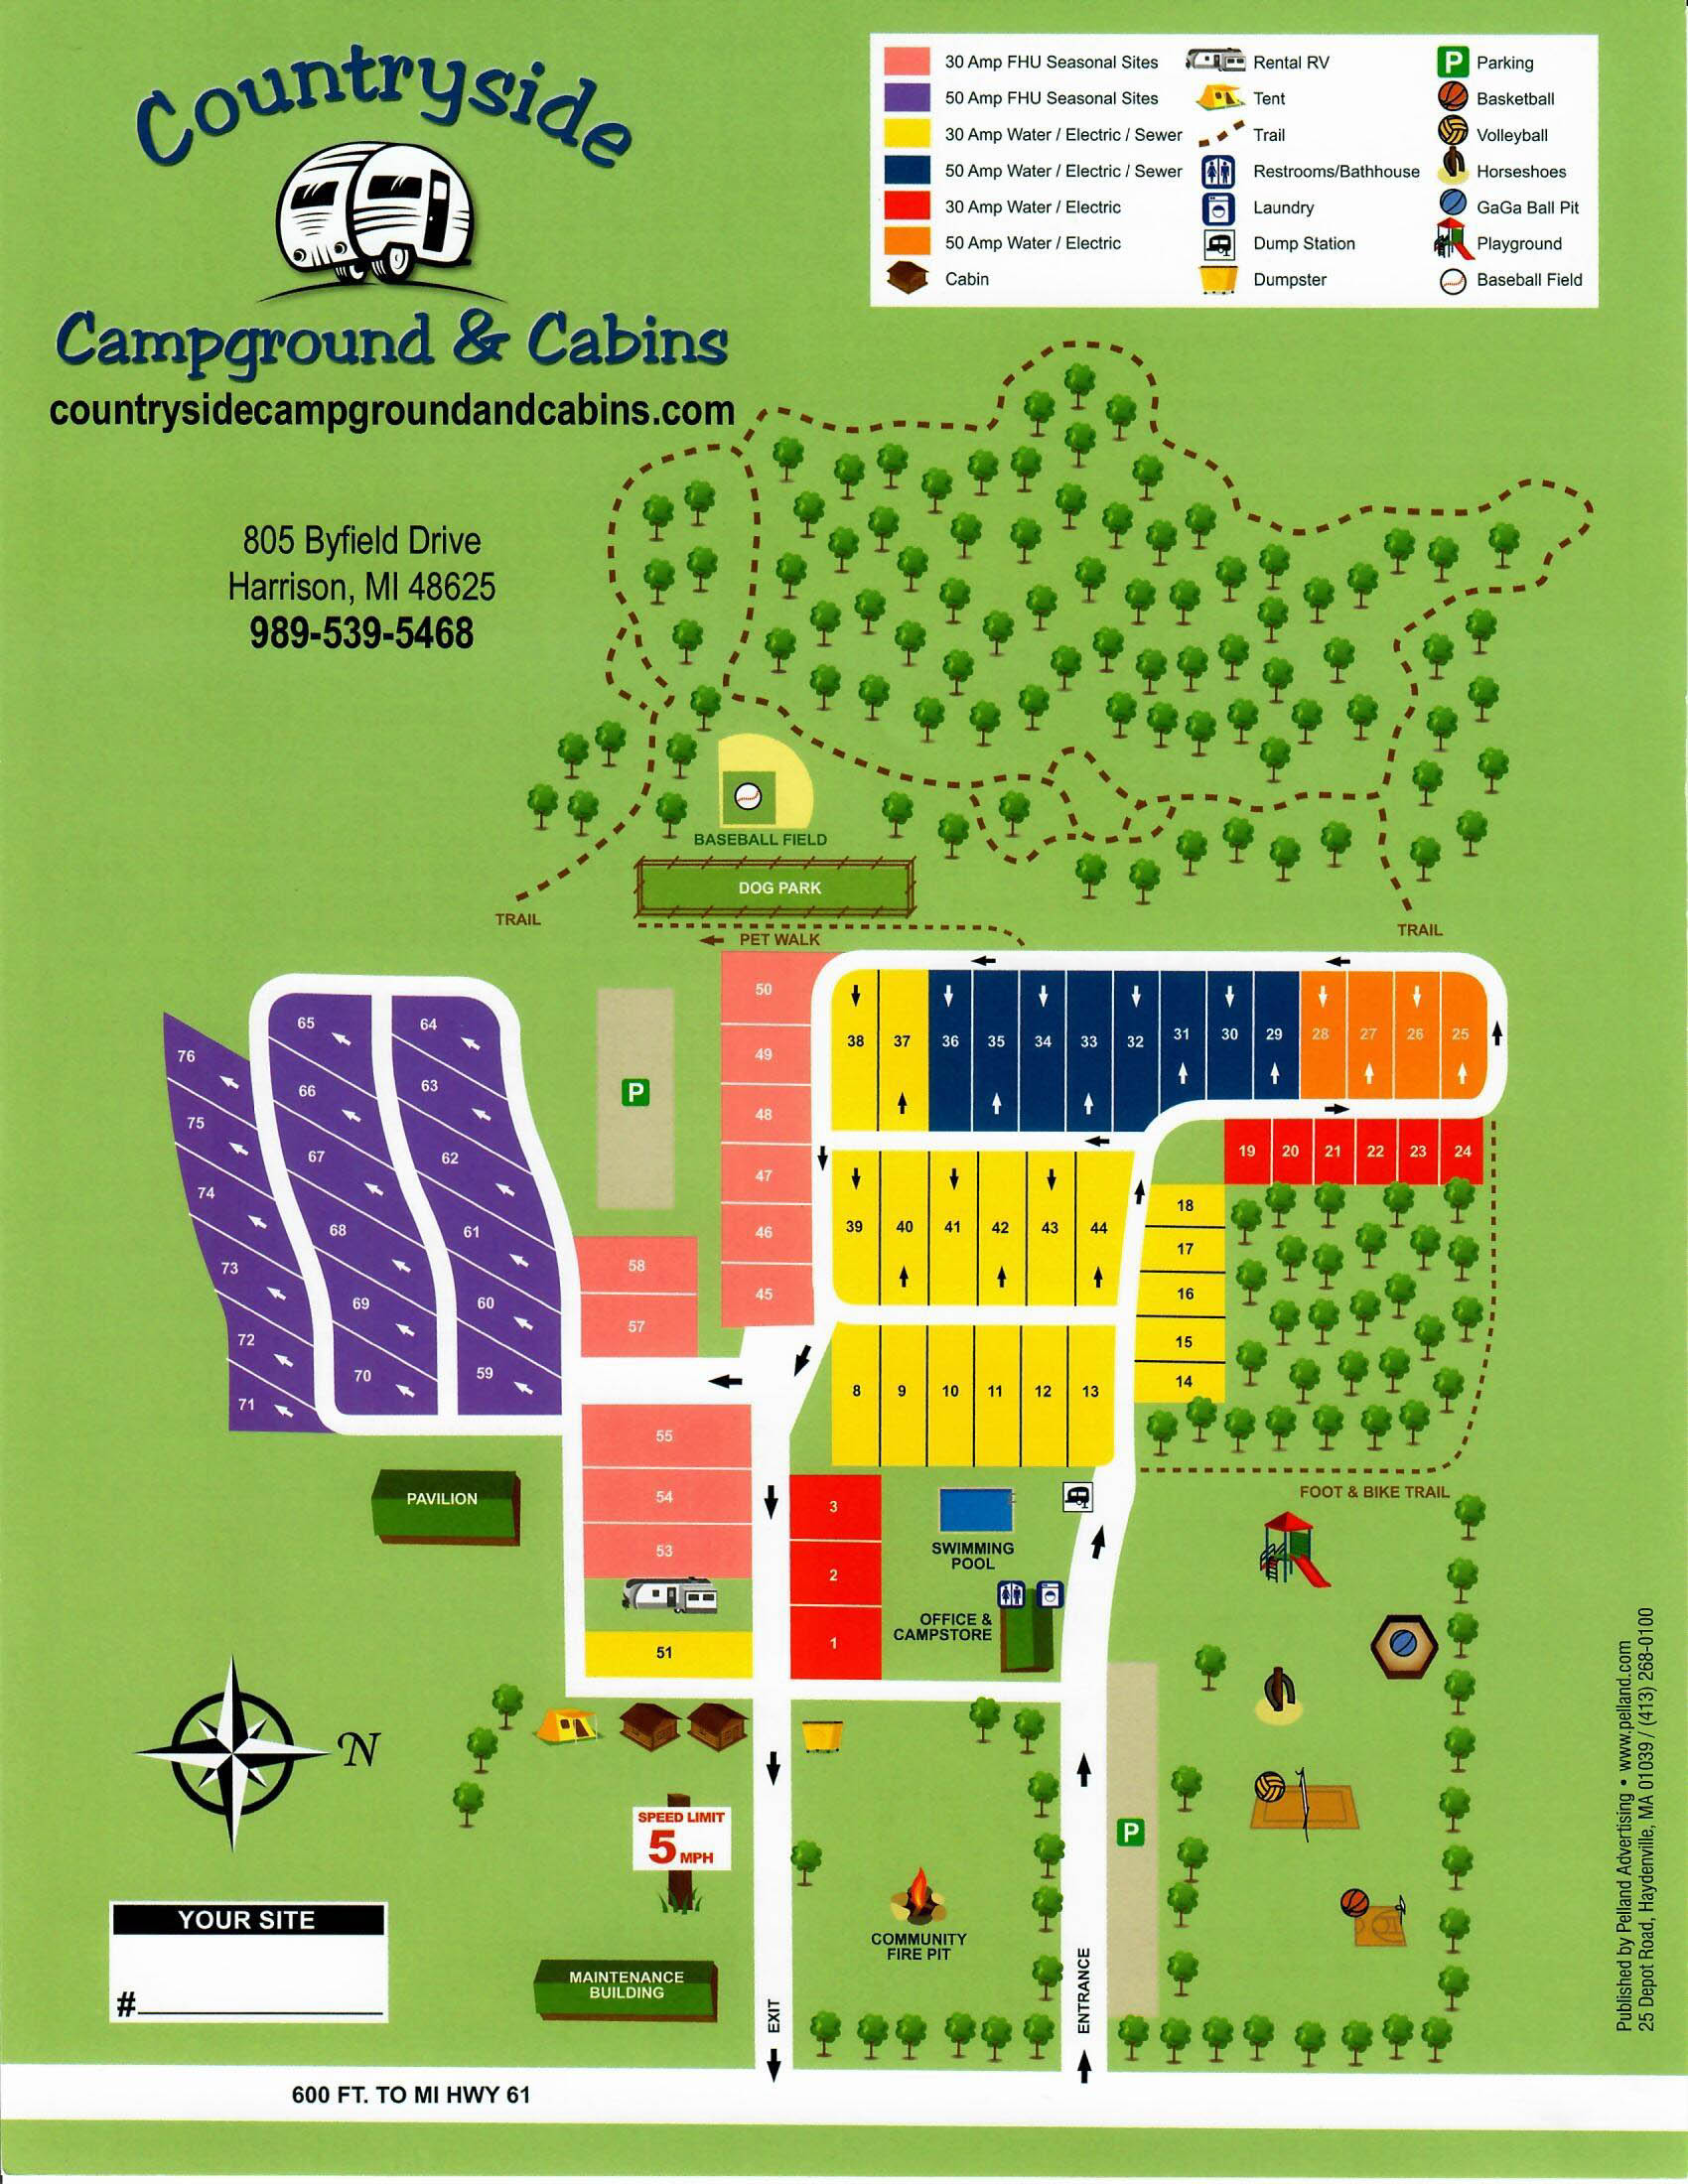 campground map for countryside campground and cabins